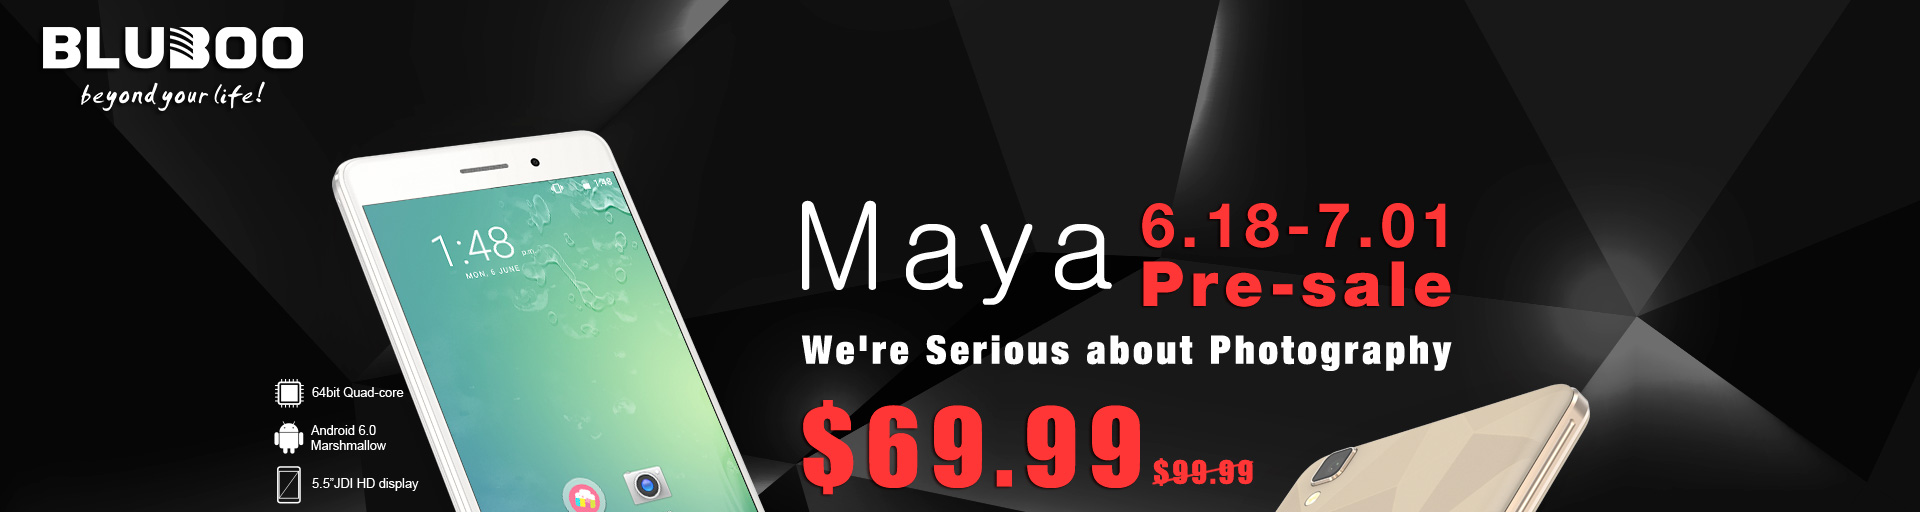 Maya 6.18-7.01 Pre-sale We're Serious about Photography $69.99